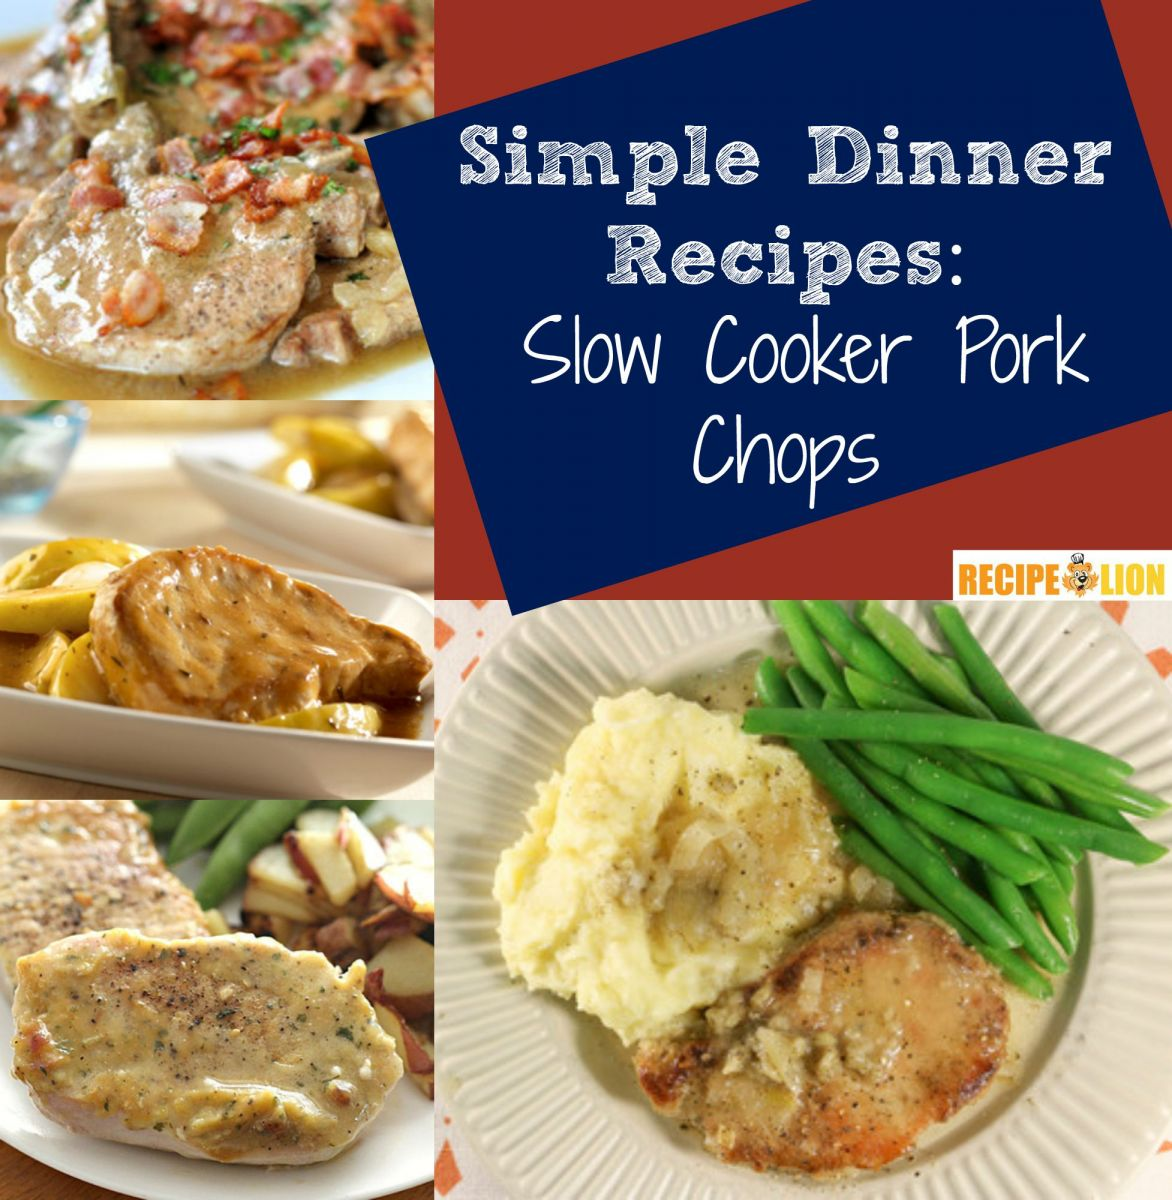 8 Easy Slow Cooker Pork Chops Recipes